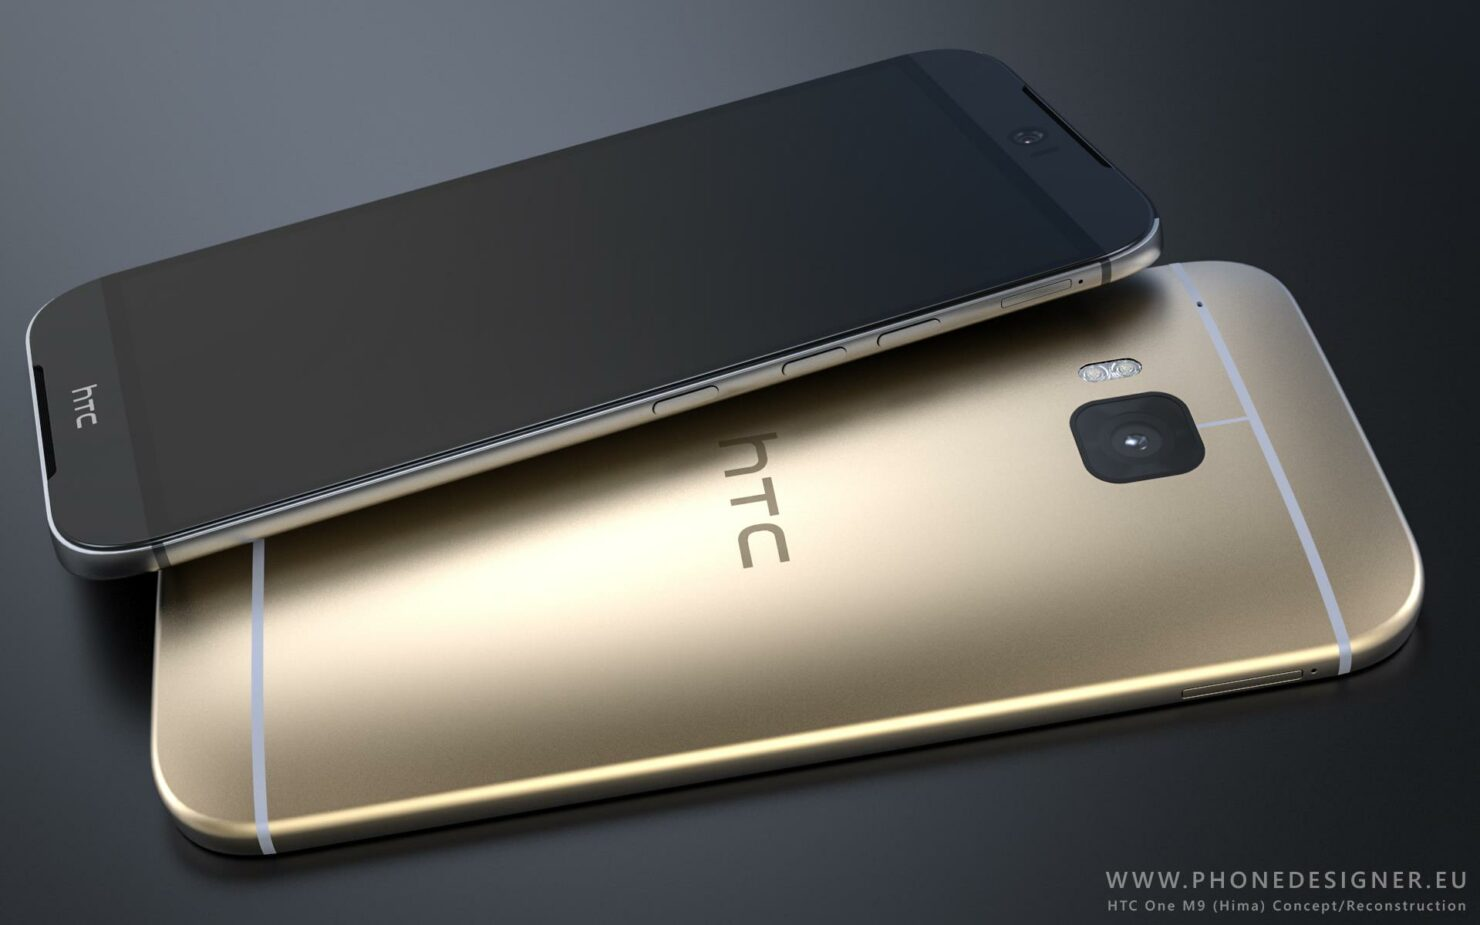 htc-one-m9-renders-this-phone-is-on-fire-2